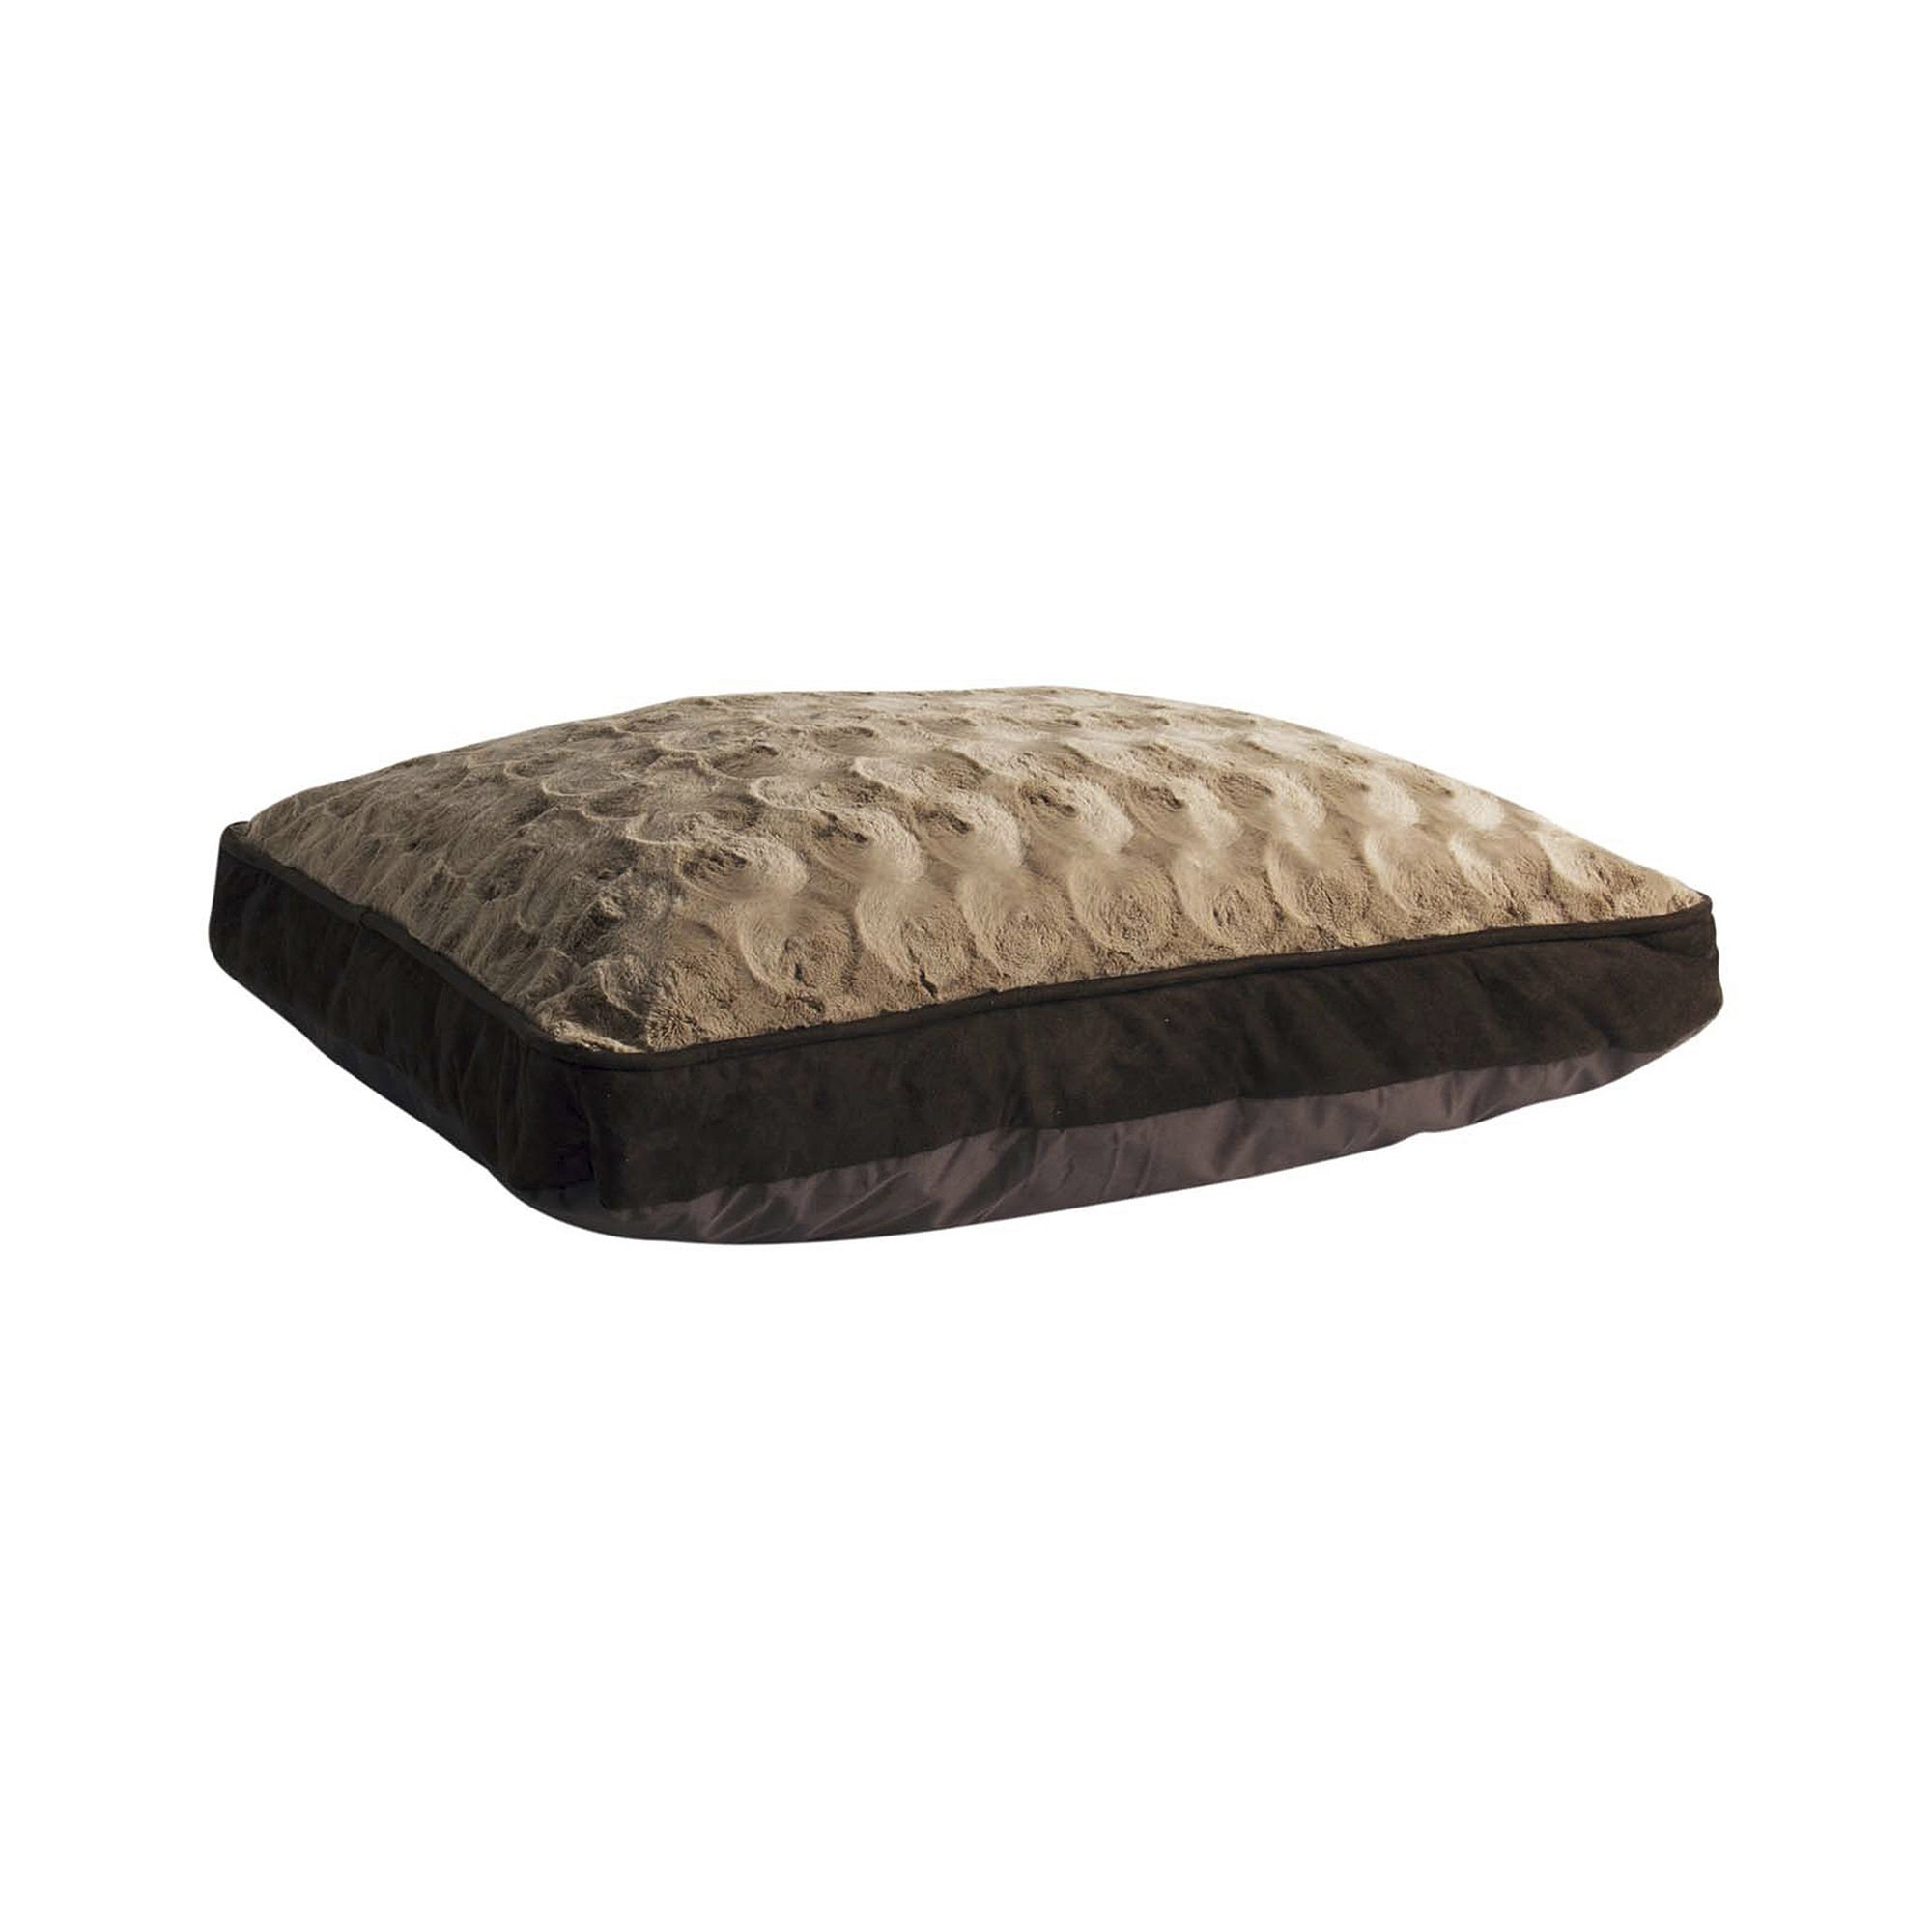 Memory Foam Dog Bed From Animal Planet: Luxurious for Small to Medium Dogs - Best Therapeutic and Orthopedic Beds. With Removable and Washable Cover, This Fancy Designer Bed Doubles As a Day Bed. Cute, Cheap and